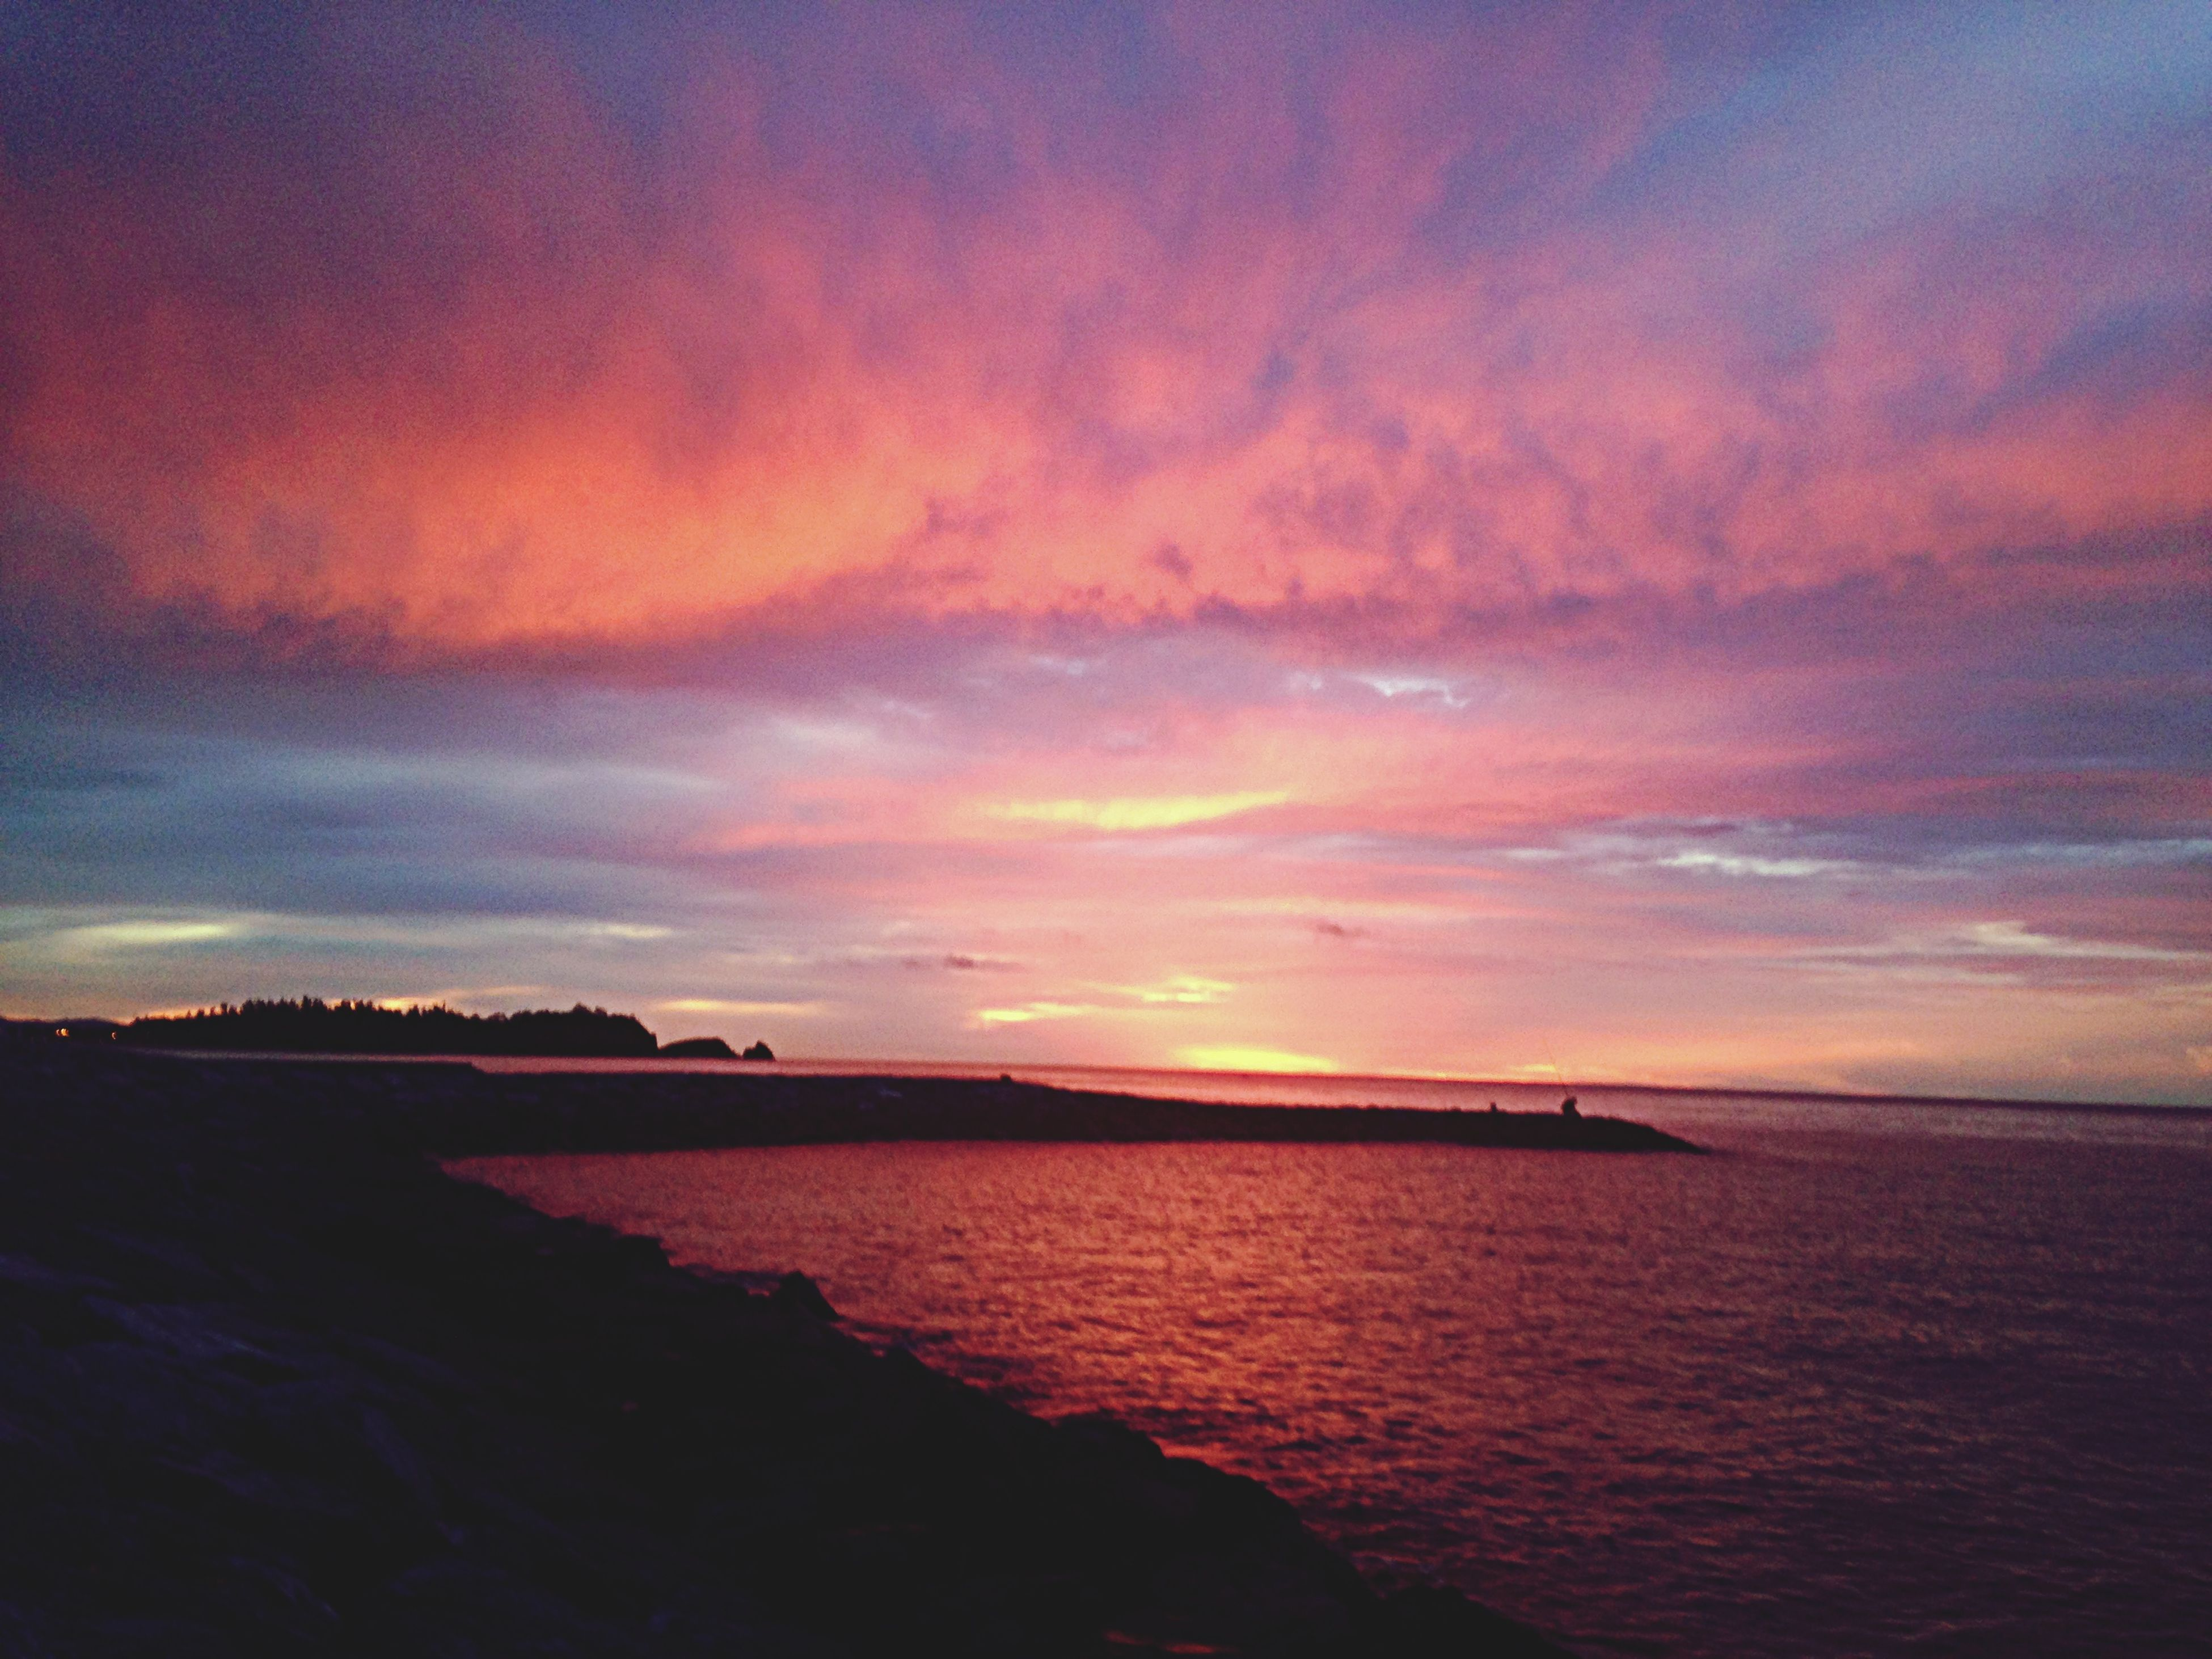 sea, water, sky, sunset, scenics, horizon over water, beach, beauty in nature, tranquility, tranquil scene, nature, cloud - sky, shore, idyllic, dusk, outdoors, waterfront, transportation, cloud, reflection